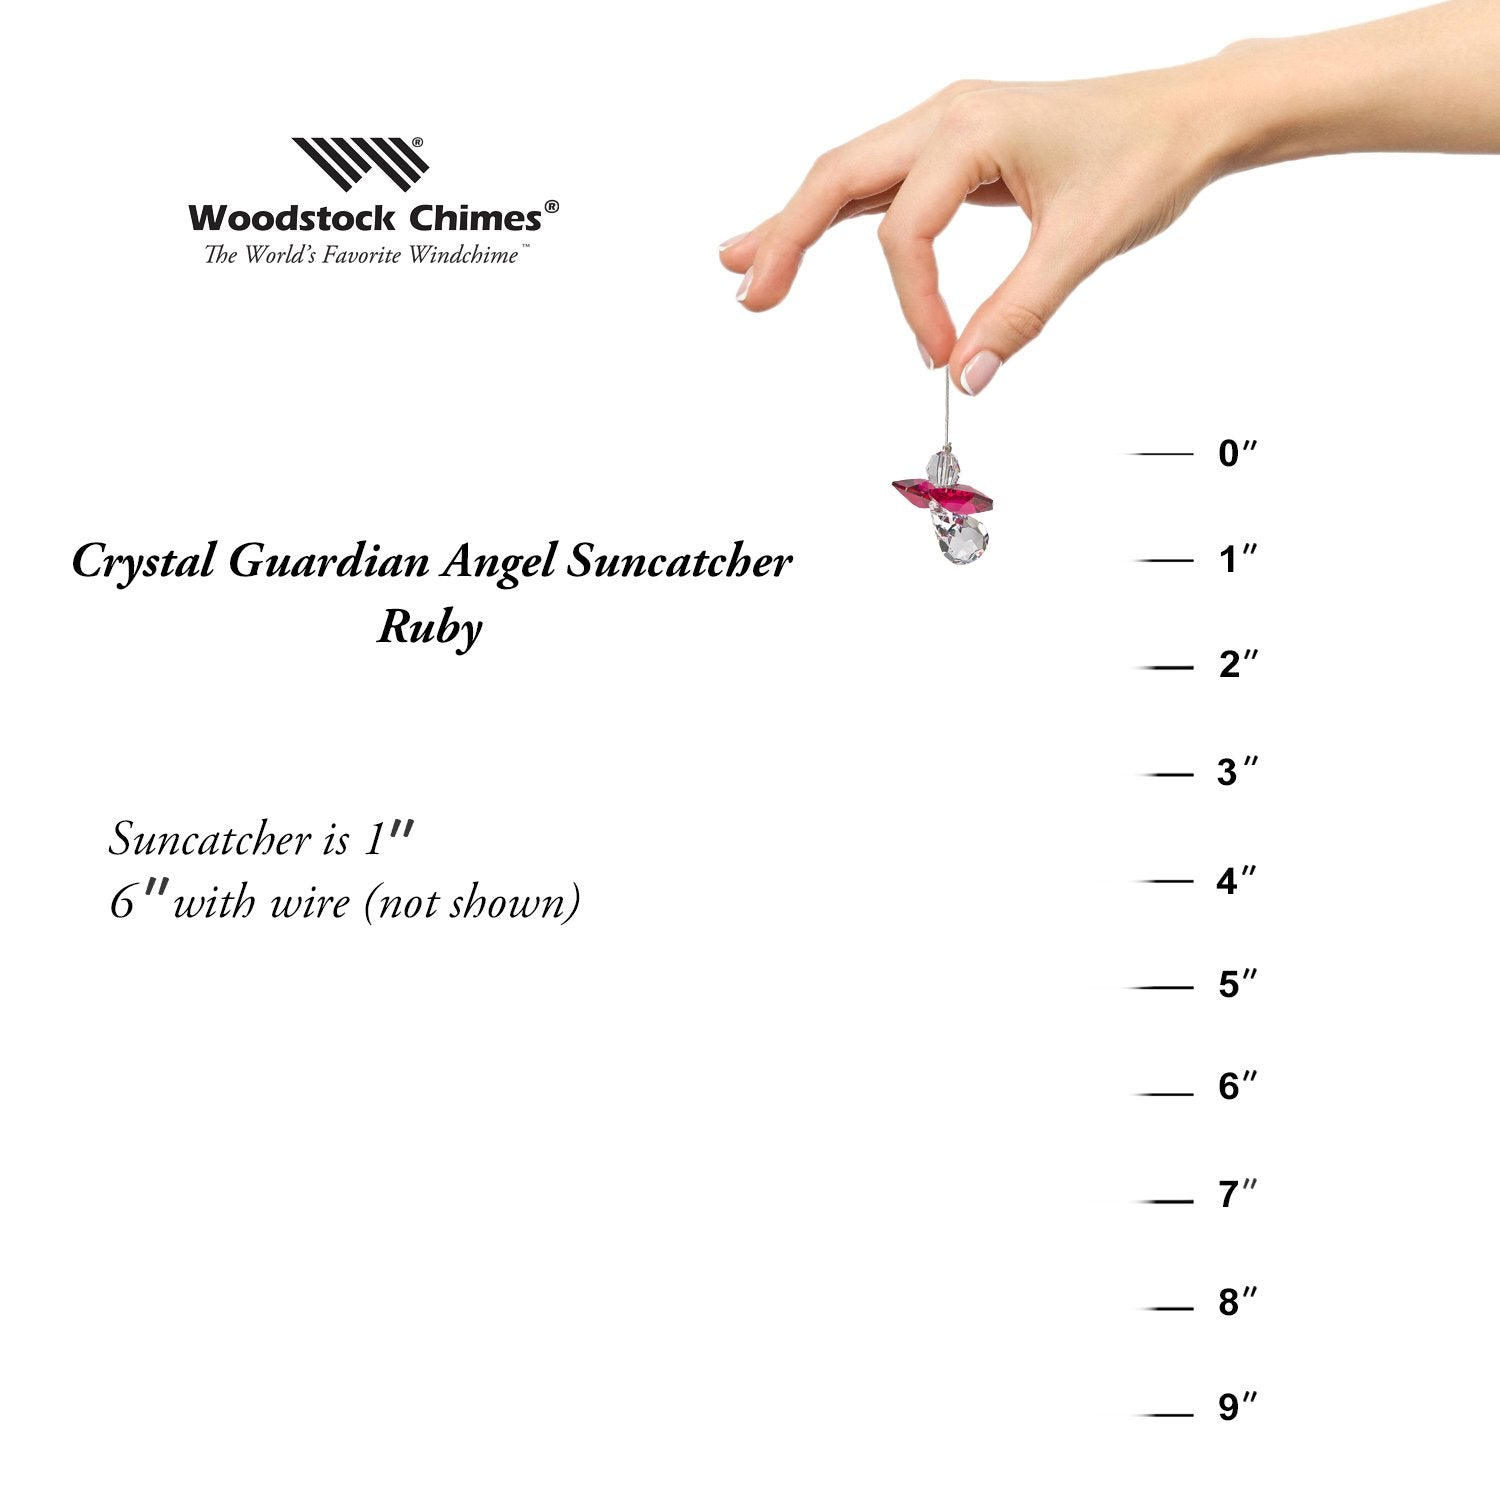 Crystal Guardian Angel Suncatcher - Ruby (July) proportion image